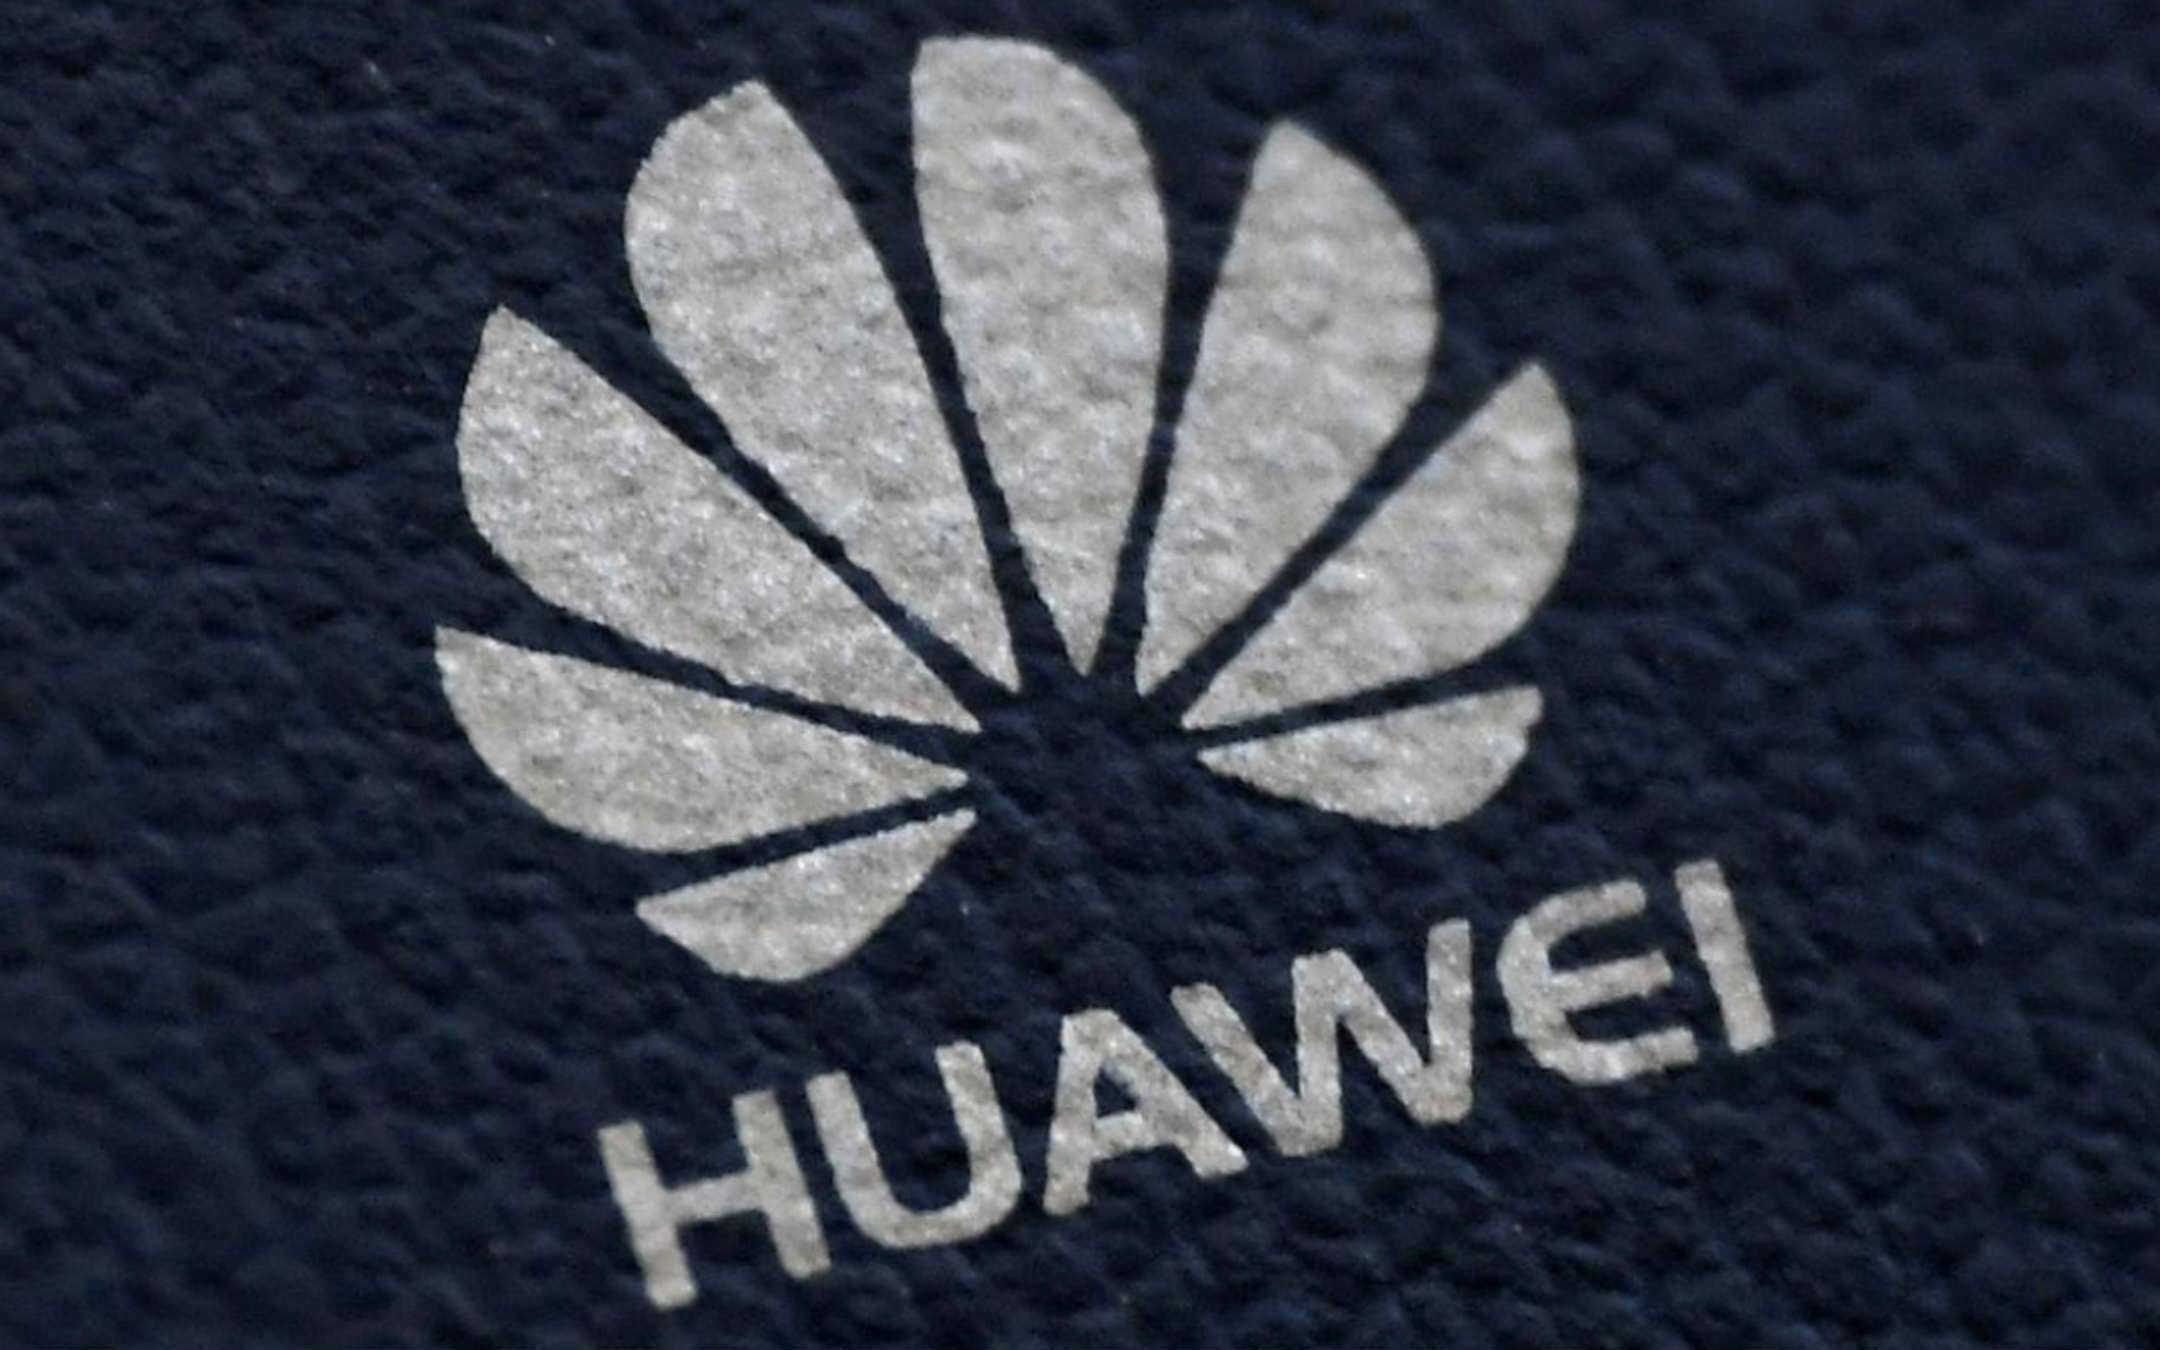 Huawei reaches out to the EU: we have common interests